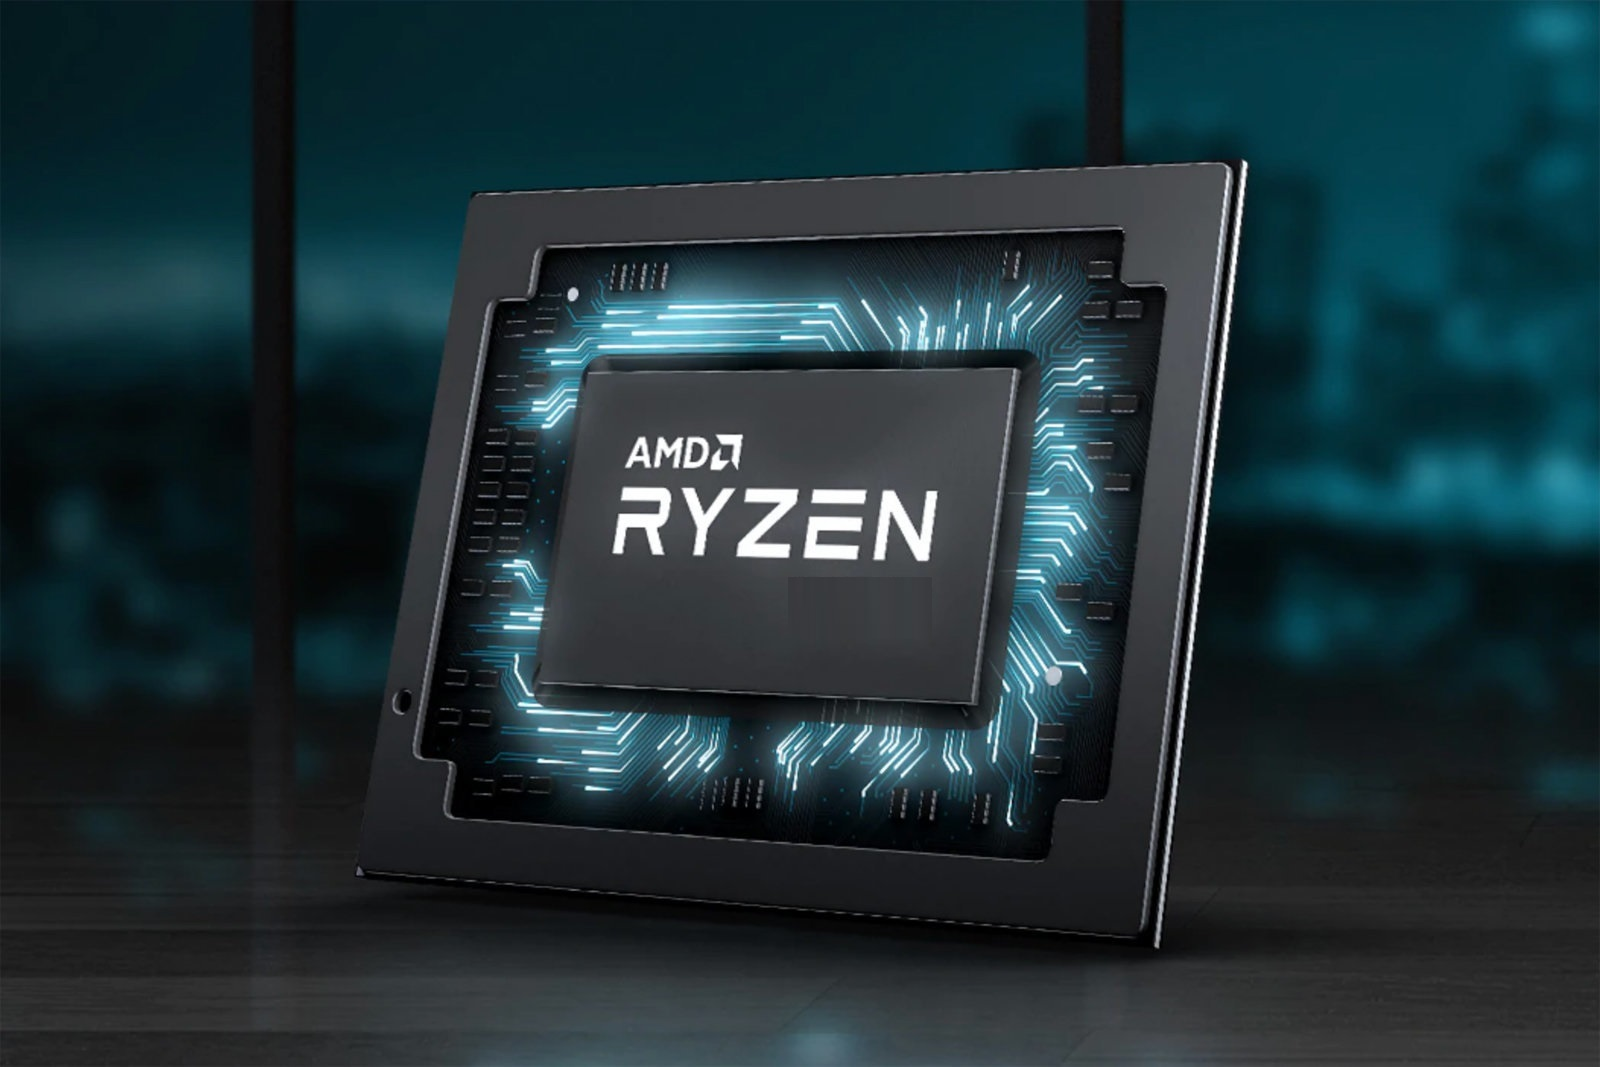 Amd Ryzen 5 4600h Apu Is Within Striking Distance Of The Intel Core I7 10750h Says Benchmarks Technosports